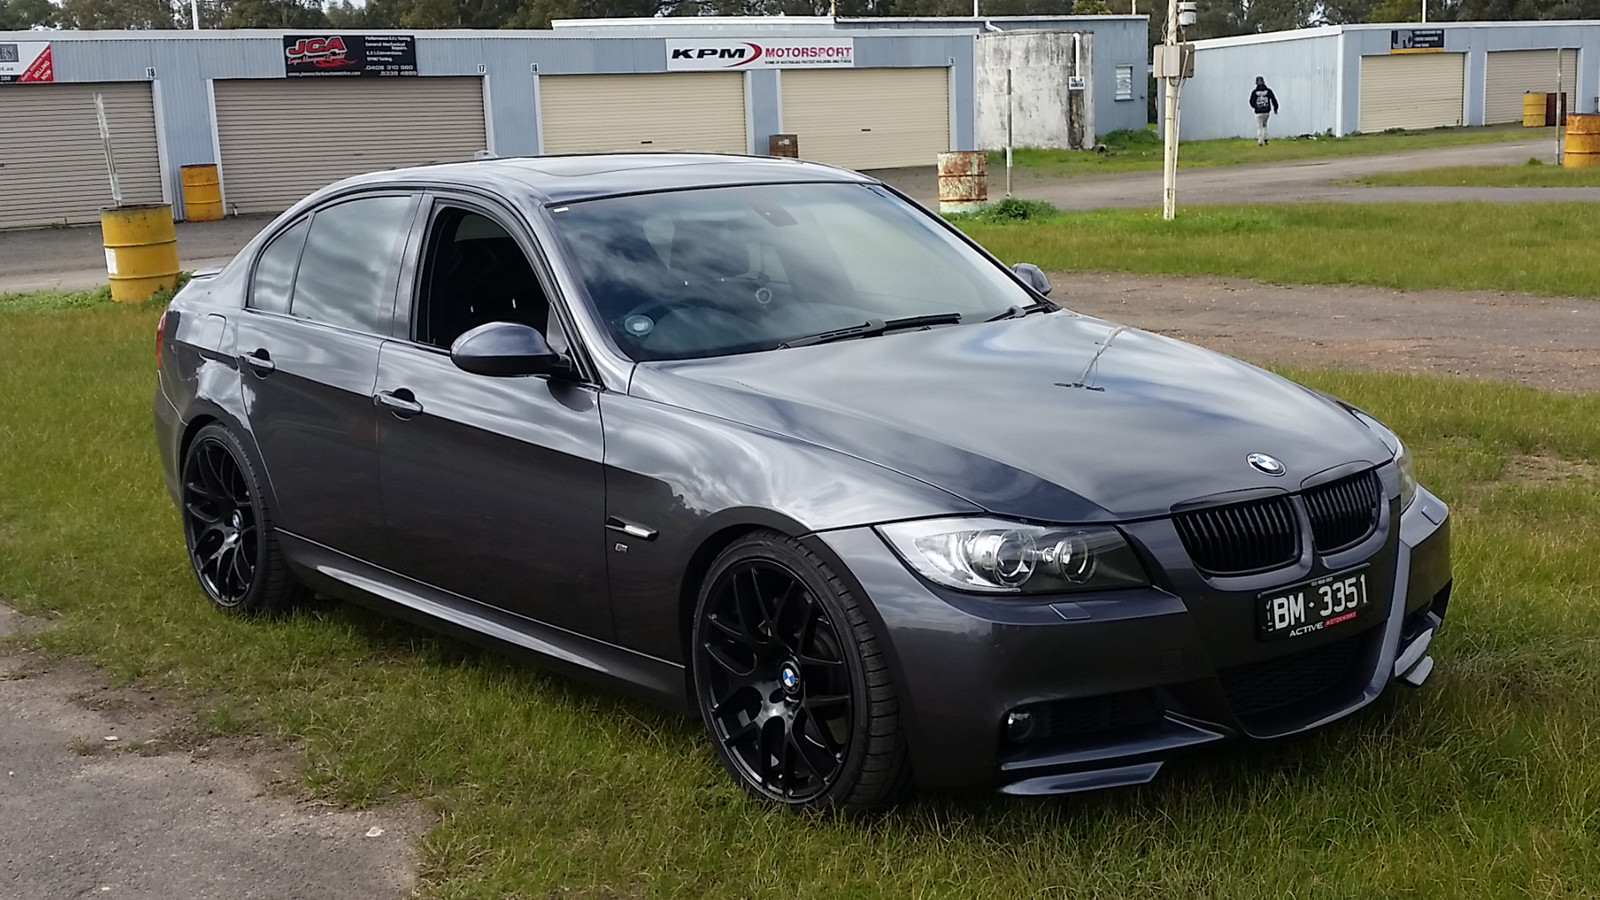 BMW I E Sedan Mile Trap Speeds DragTimescom - Bmw 335i pictures